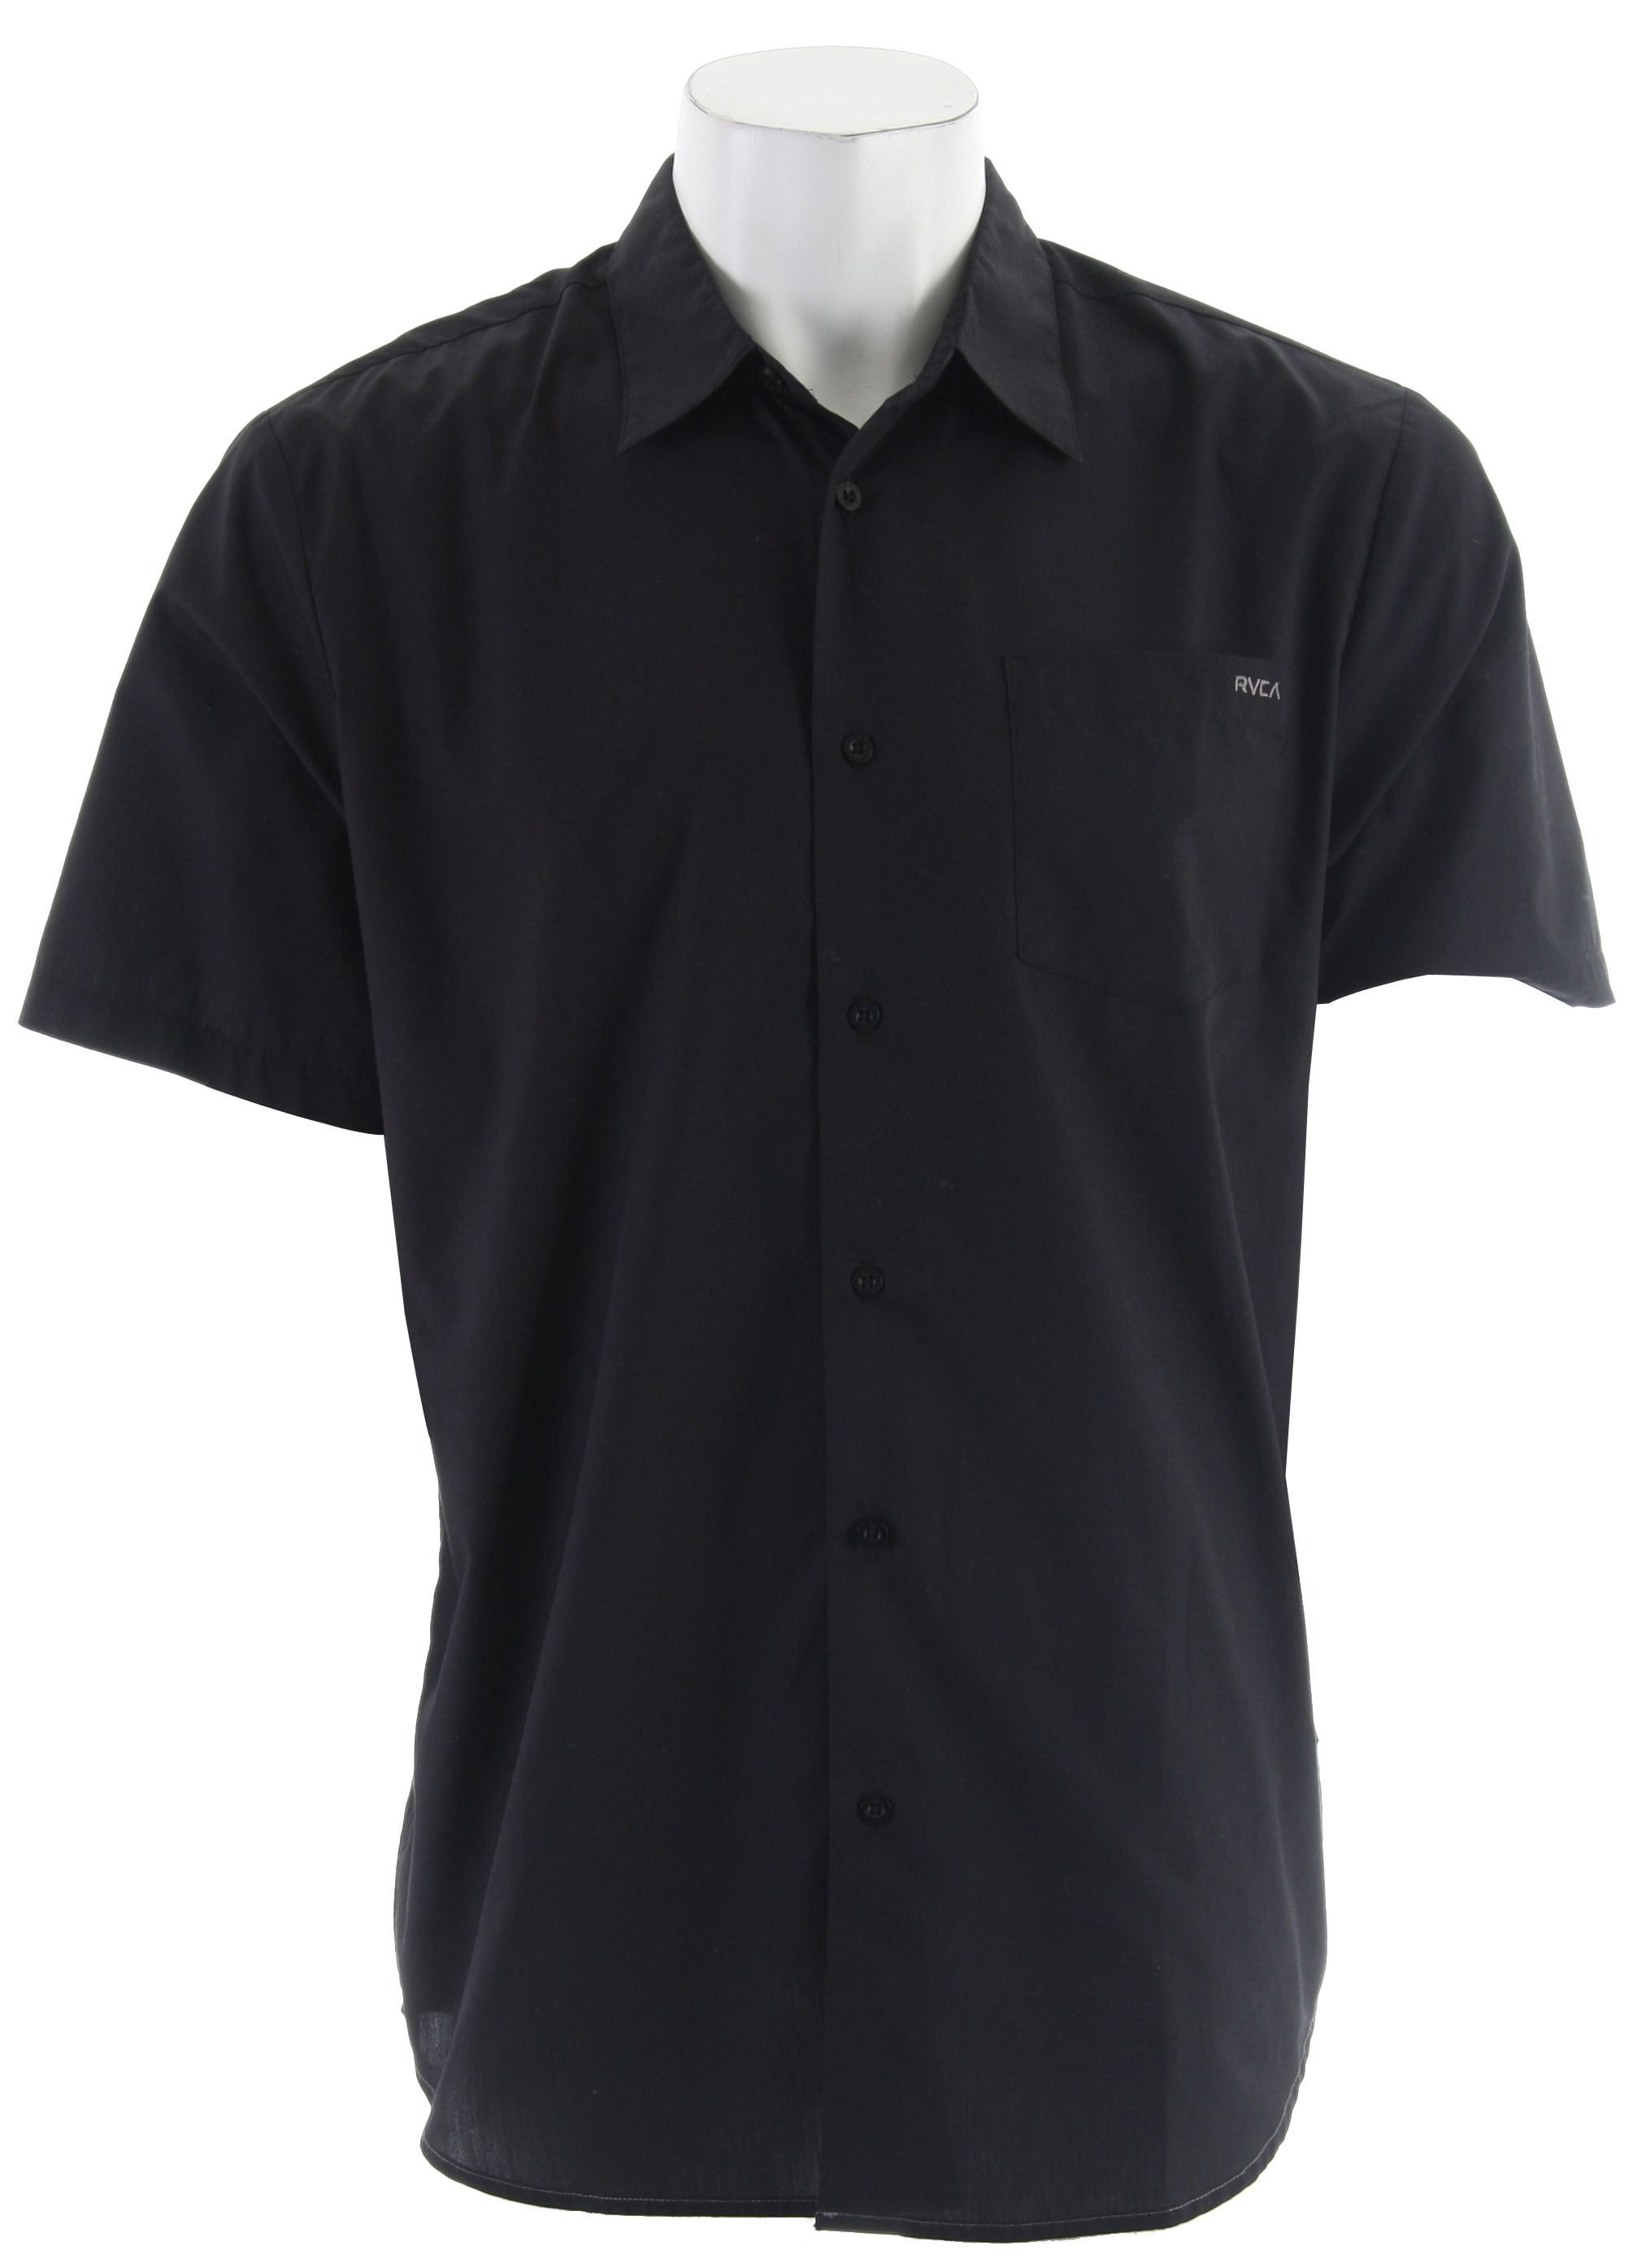 Key Features of the RVCA Republic S/S Shirt: Cotton/Polyester Short Sleeve Button Down Patch Pocket At Left Front Chest RVCA Embroidery At Left Chest Pocket VA Flag Label At Bottom Left Side Slim Fit - $26.95